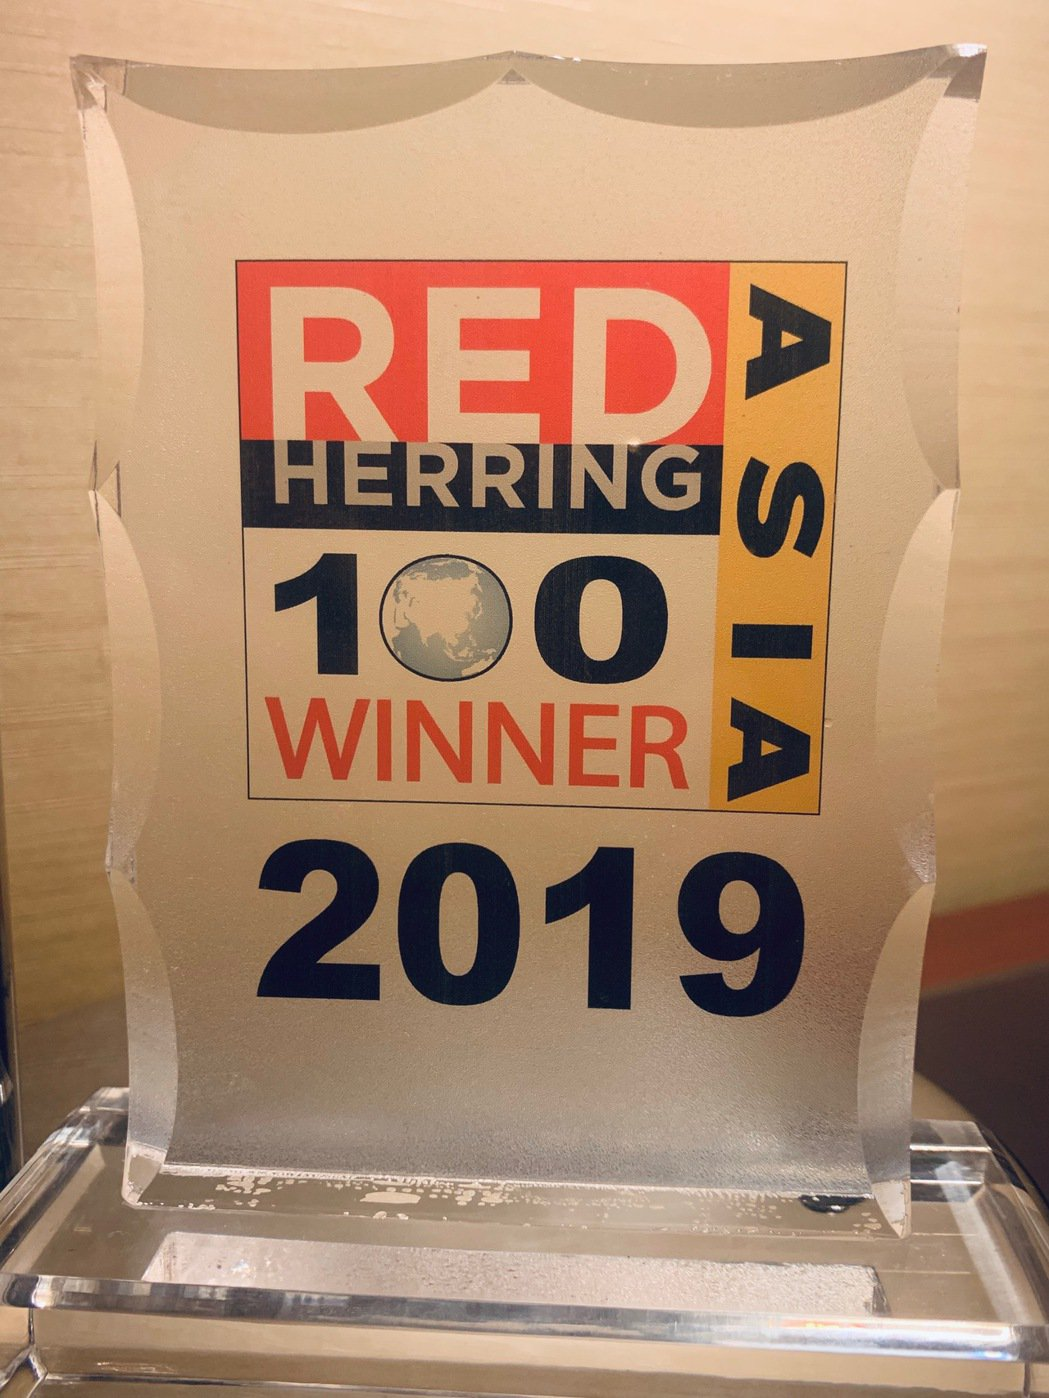 「紅鯡魚亞洲百強」「 Red Herring Top 100 Asia Awar...